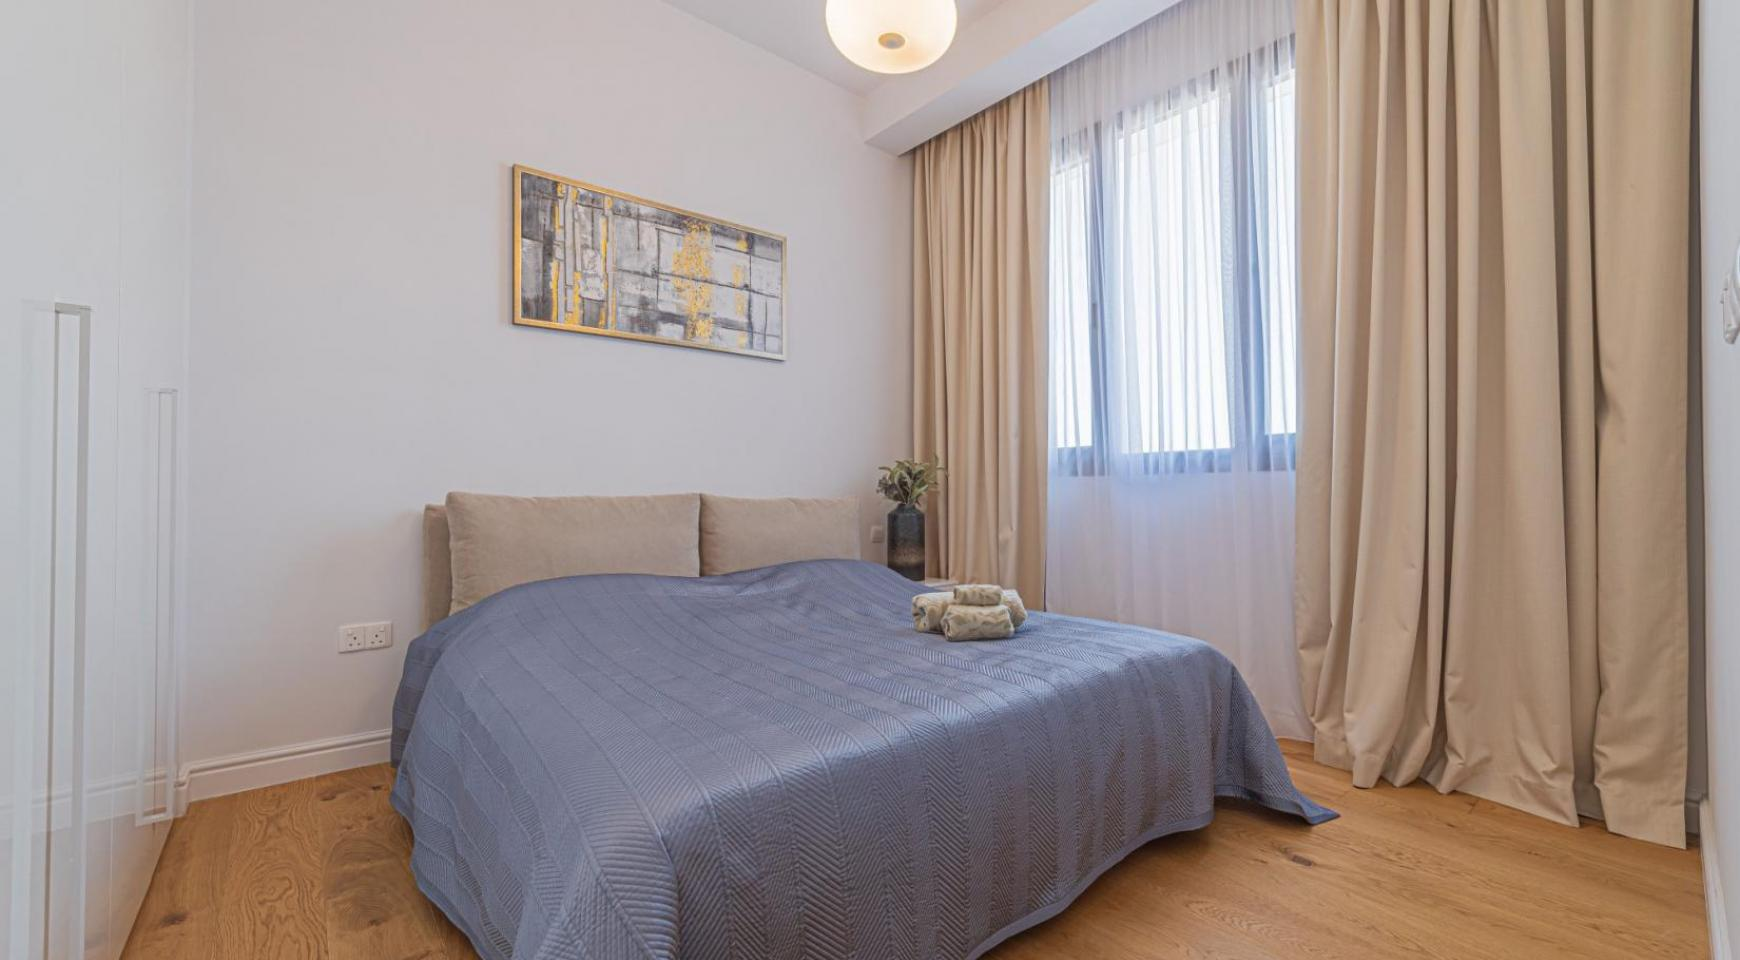 Hortensia Residence, Apt. 302. 2 Bedroom Apartment within a New Complex near the Sea  - 58